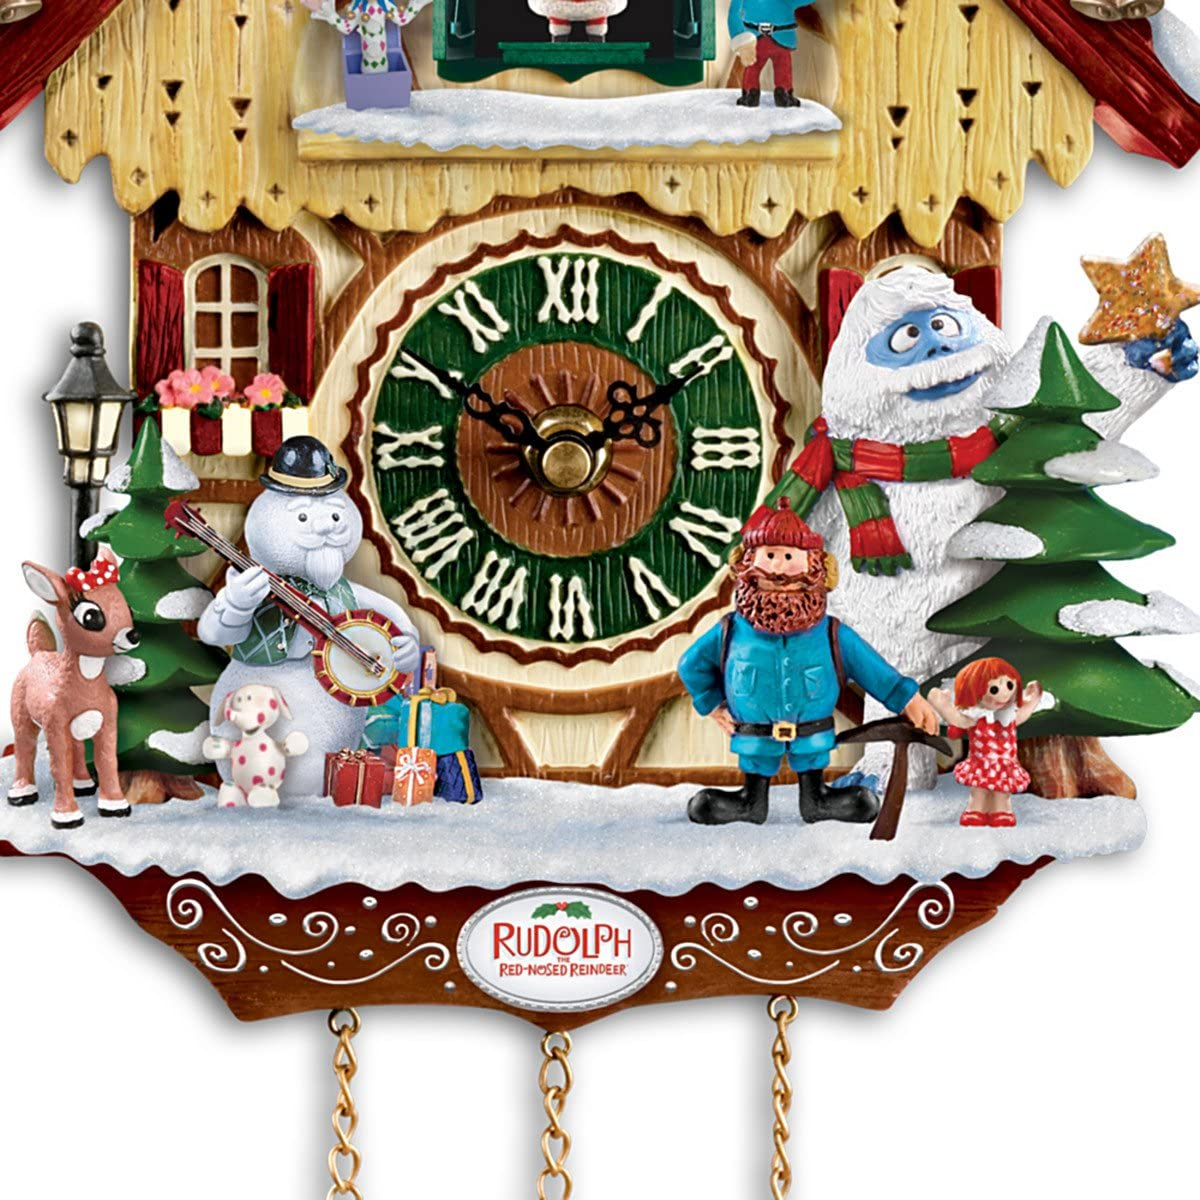 Cuckoo Clock Rudolph The Red-Nosed Reindeer 50th Anniversary ...